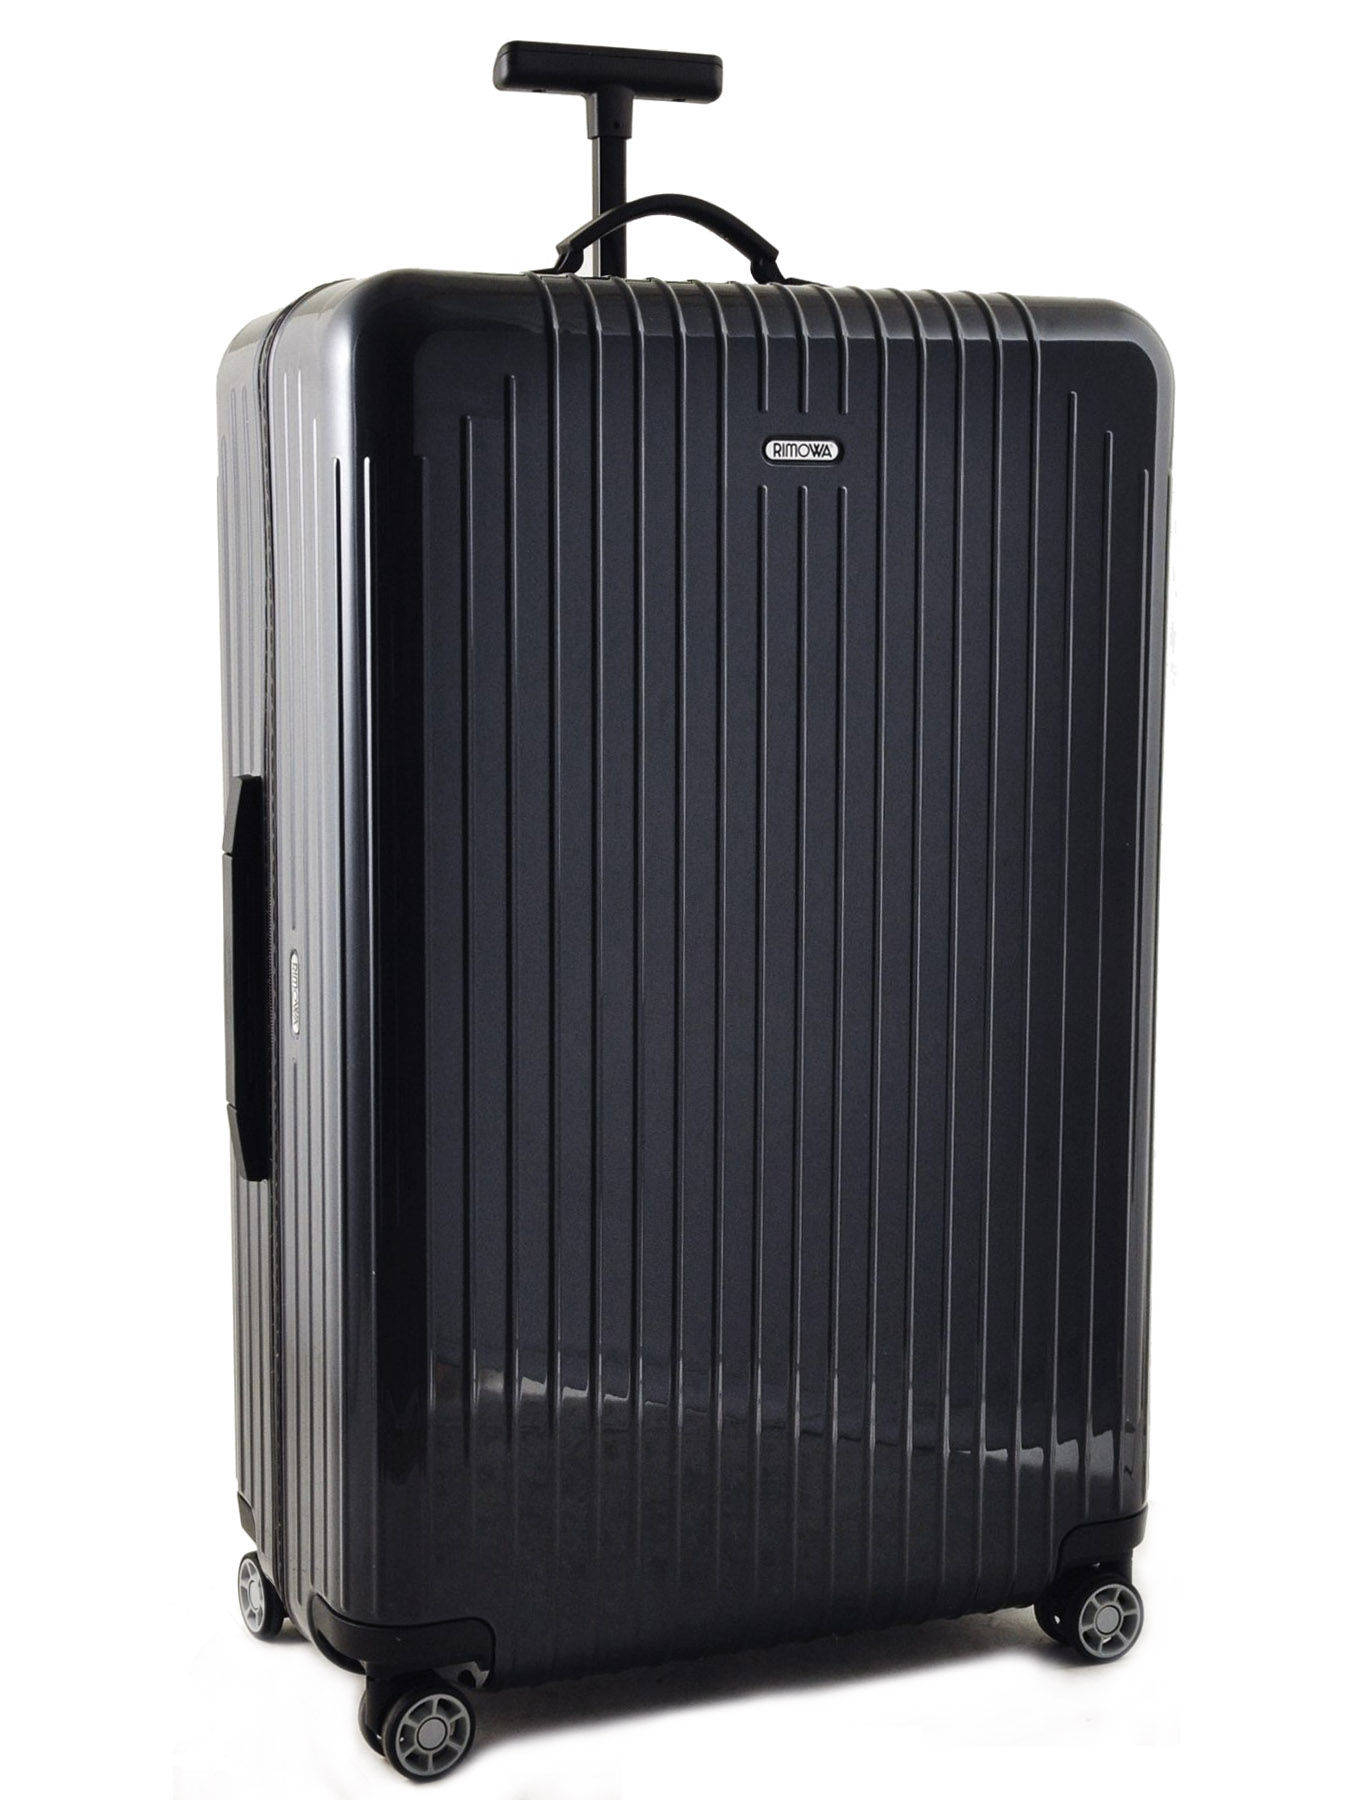 What Is The Best Luggage For Air Travel